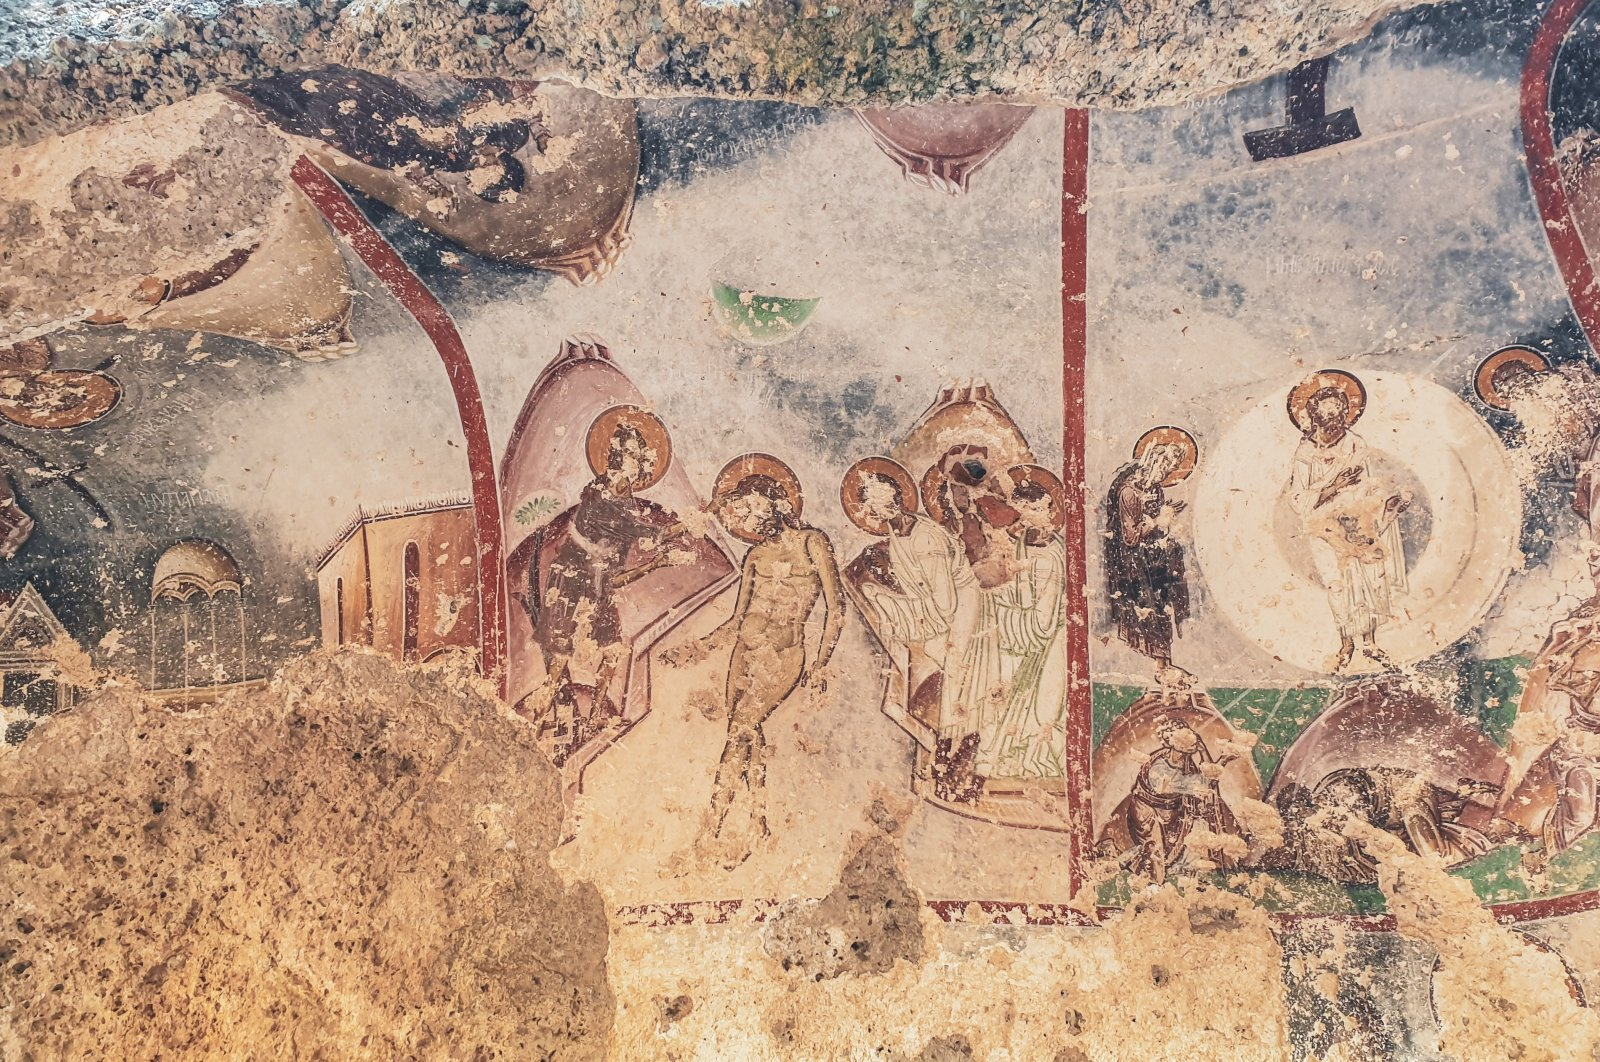 Frescoes located on the northeast side of the Yediler Monastery depict scenes from Jesus Christ's life, Muğla, Turkey. (Photo by Argun Konuk)